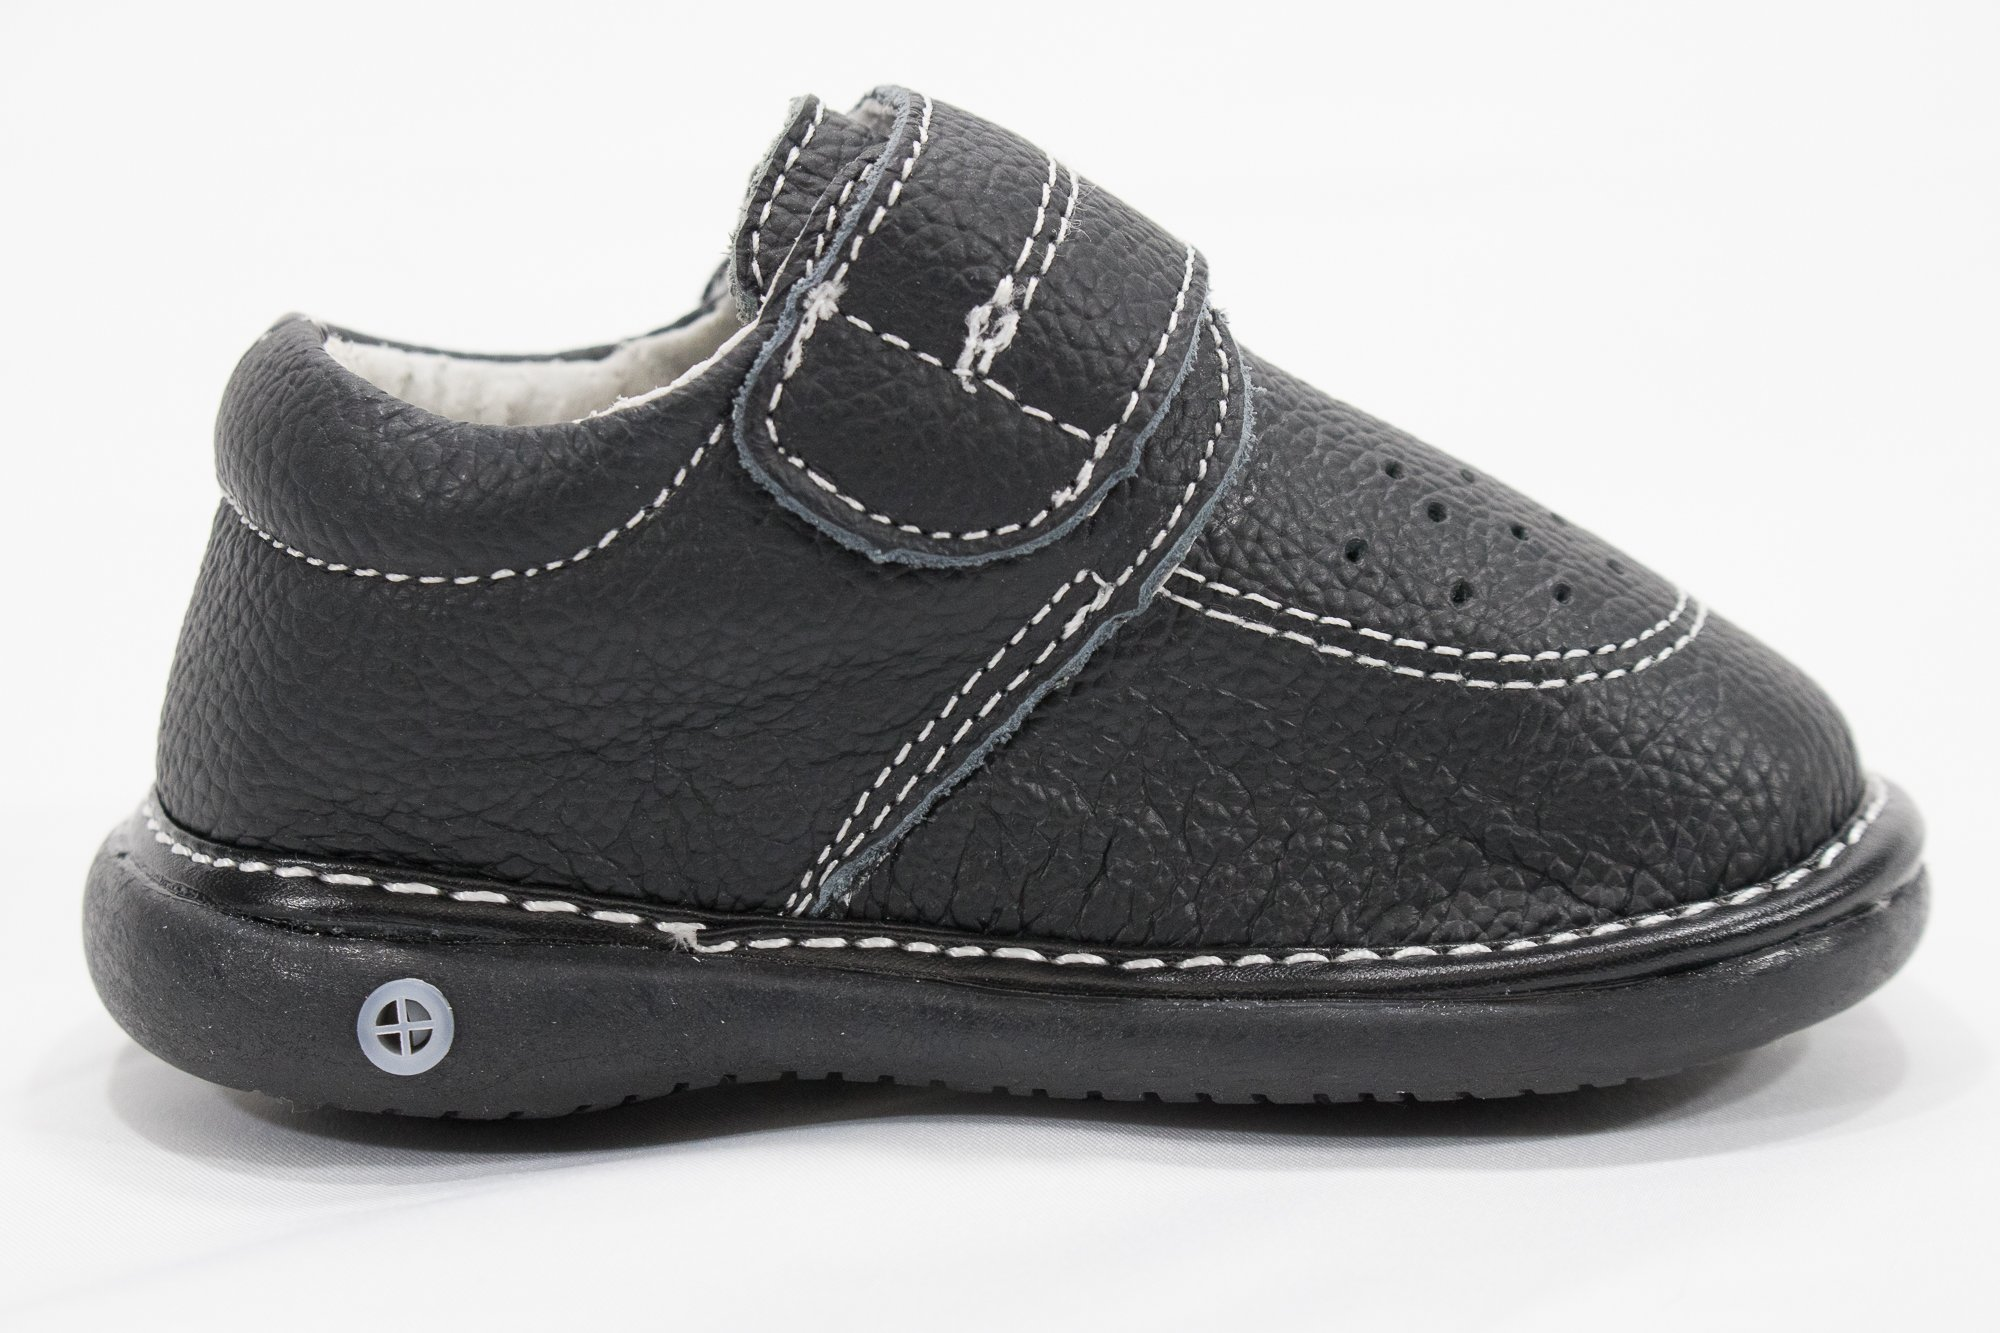 Anderson Baby Care LLC Squeaky Shoes for Toddler Boys (4T, Black Loafer) by Anderson Baby Care LLC (Image #5)